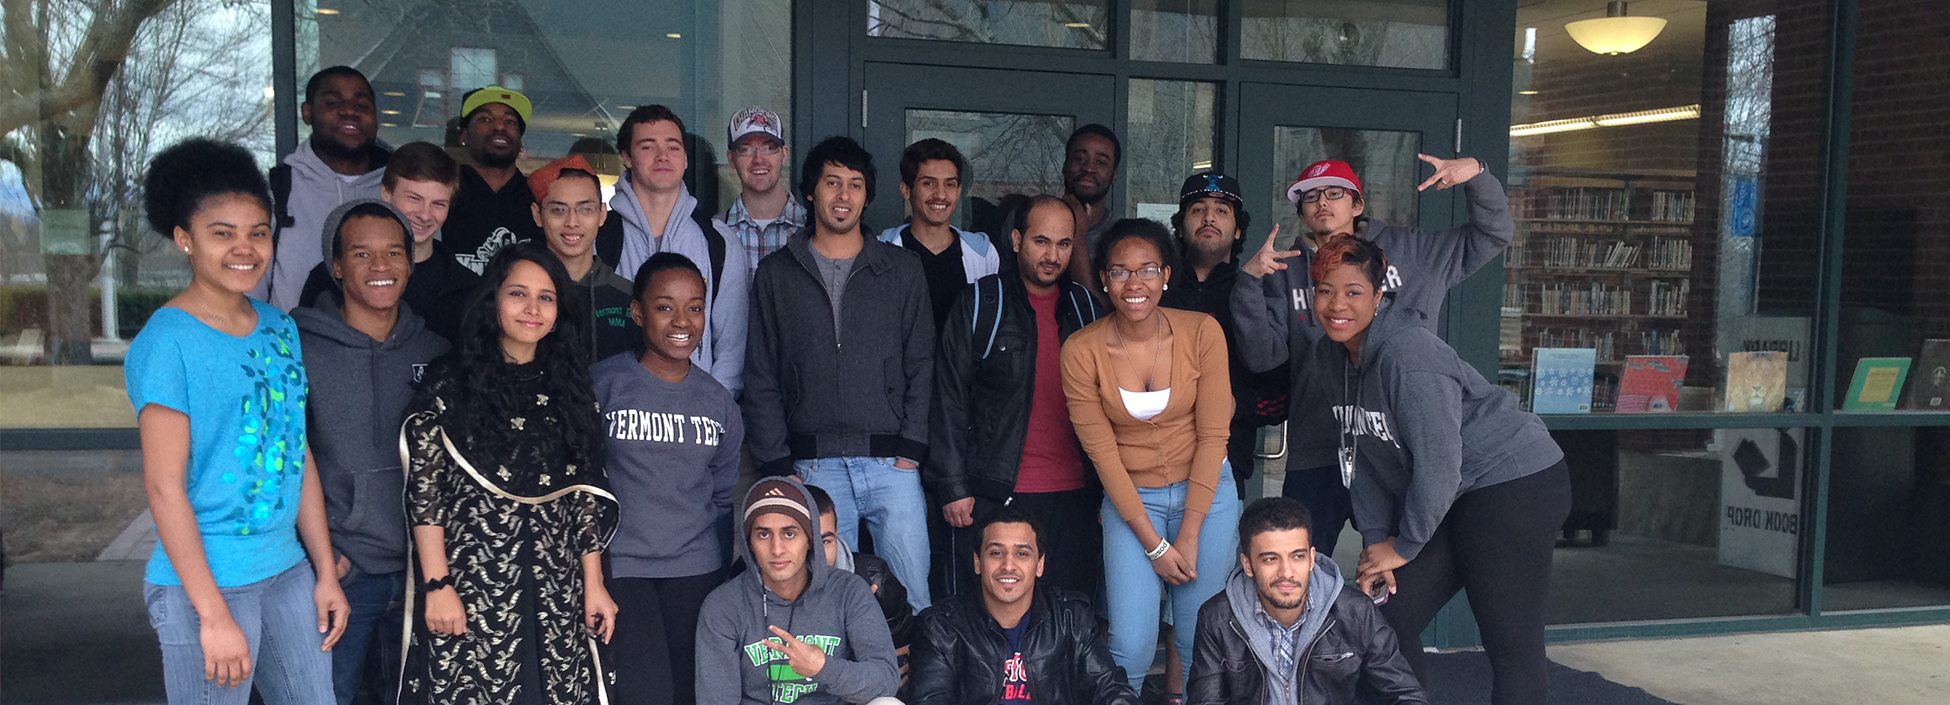 Students from Vermont Tech's Multicultural Club pose for a group photo